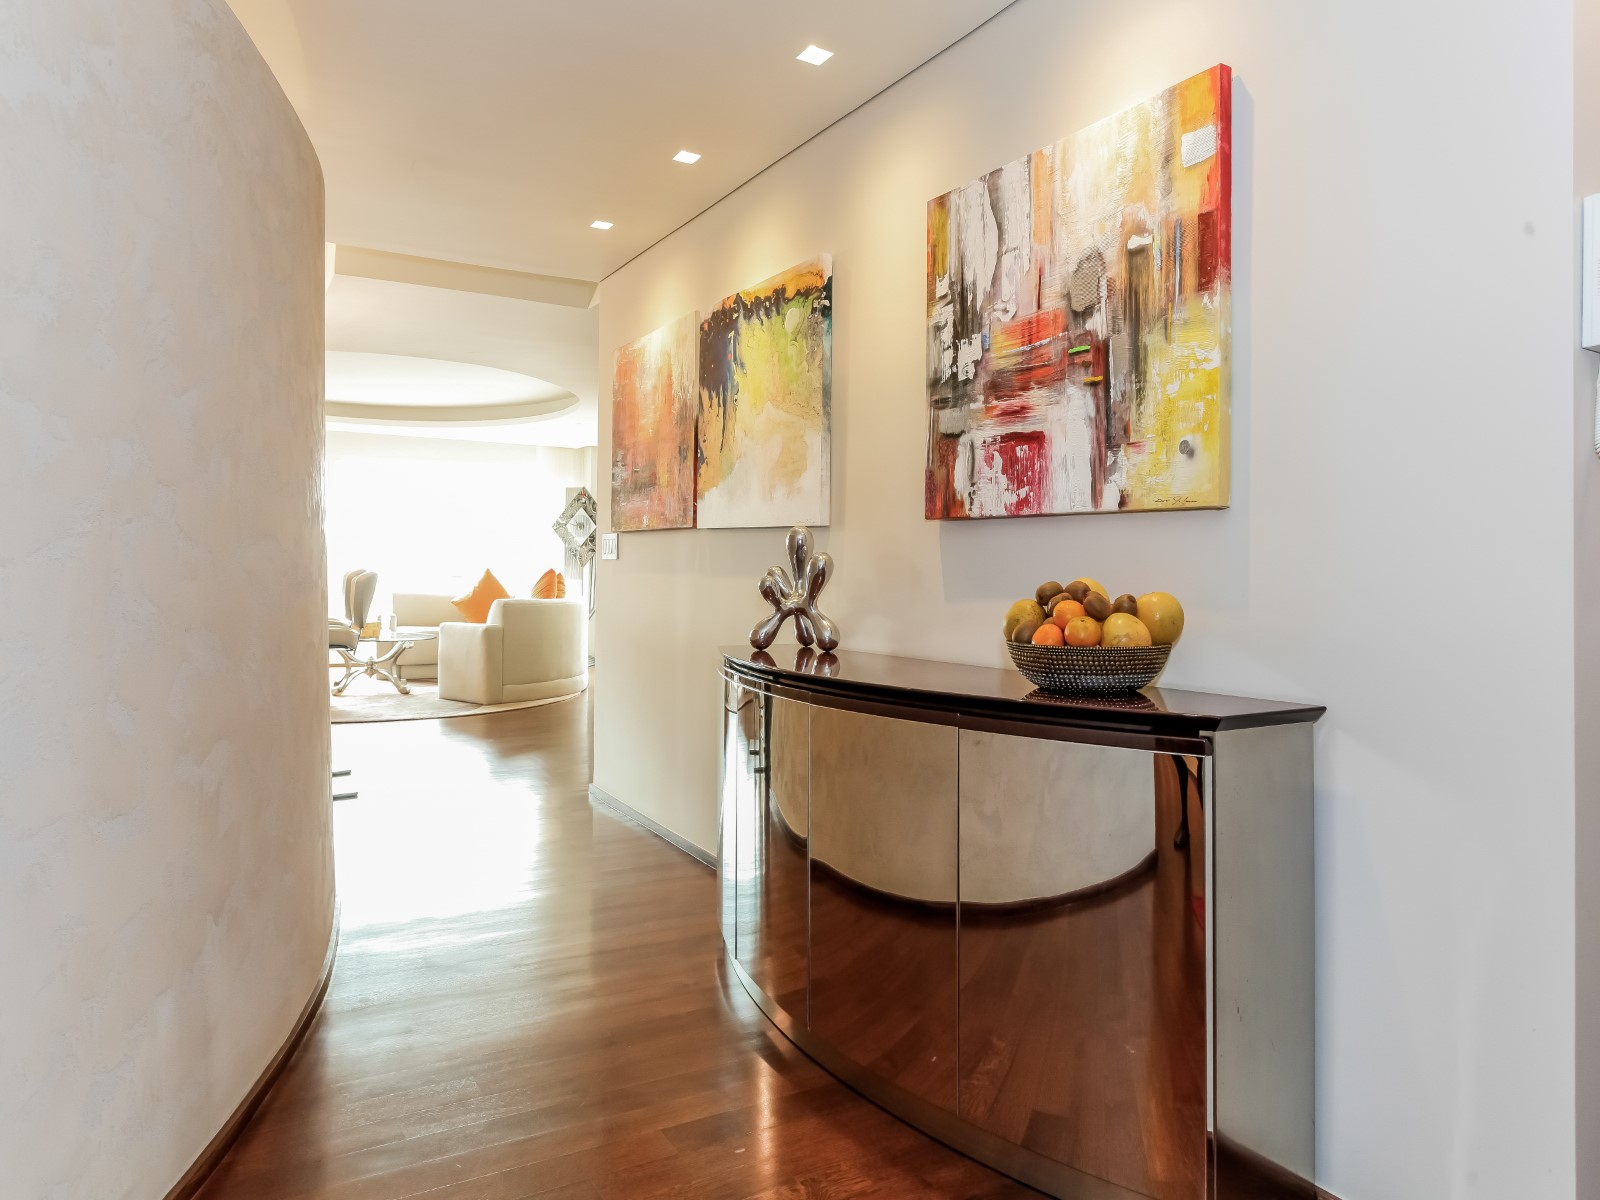 Condominium for Rent at 721 Fifth Avenue 721 Fifth Avenue Apt 52ab New York, New York 10022 United States